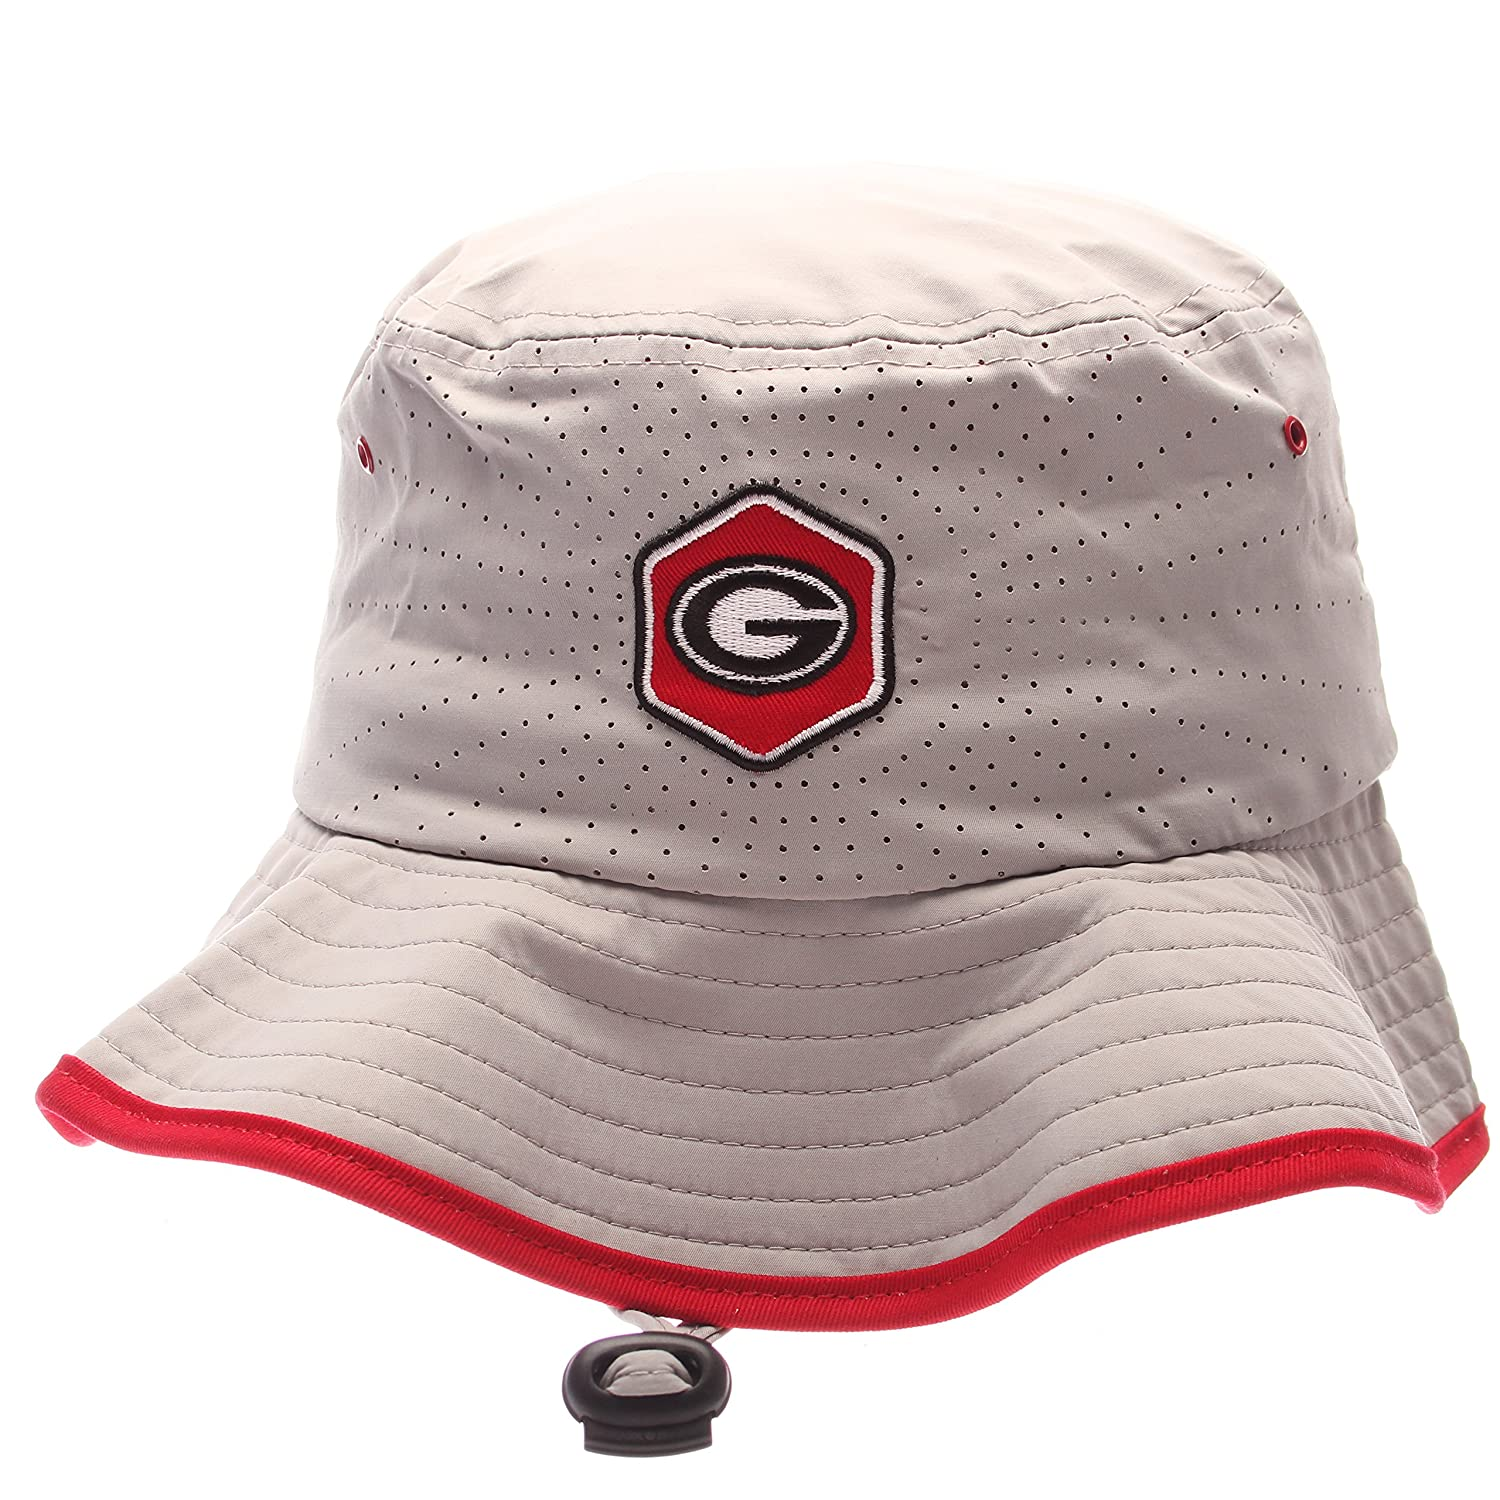 finest selection 1ca58 a6855 Amazon.com   ZHATS Radiant Bucket Hat   Sports   Outdoors